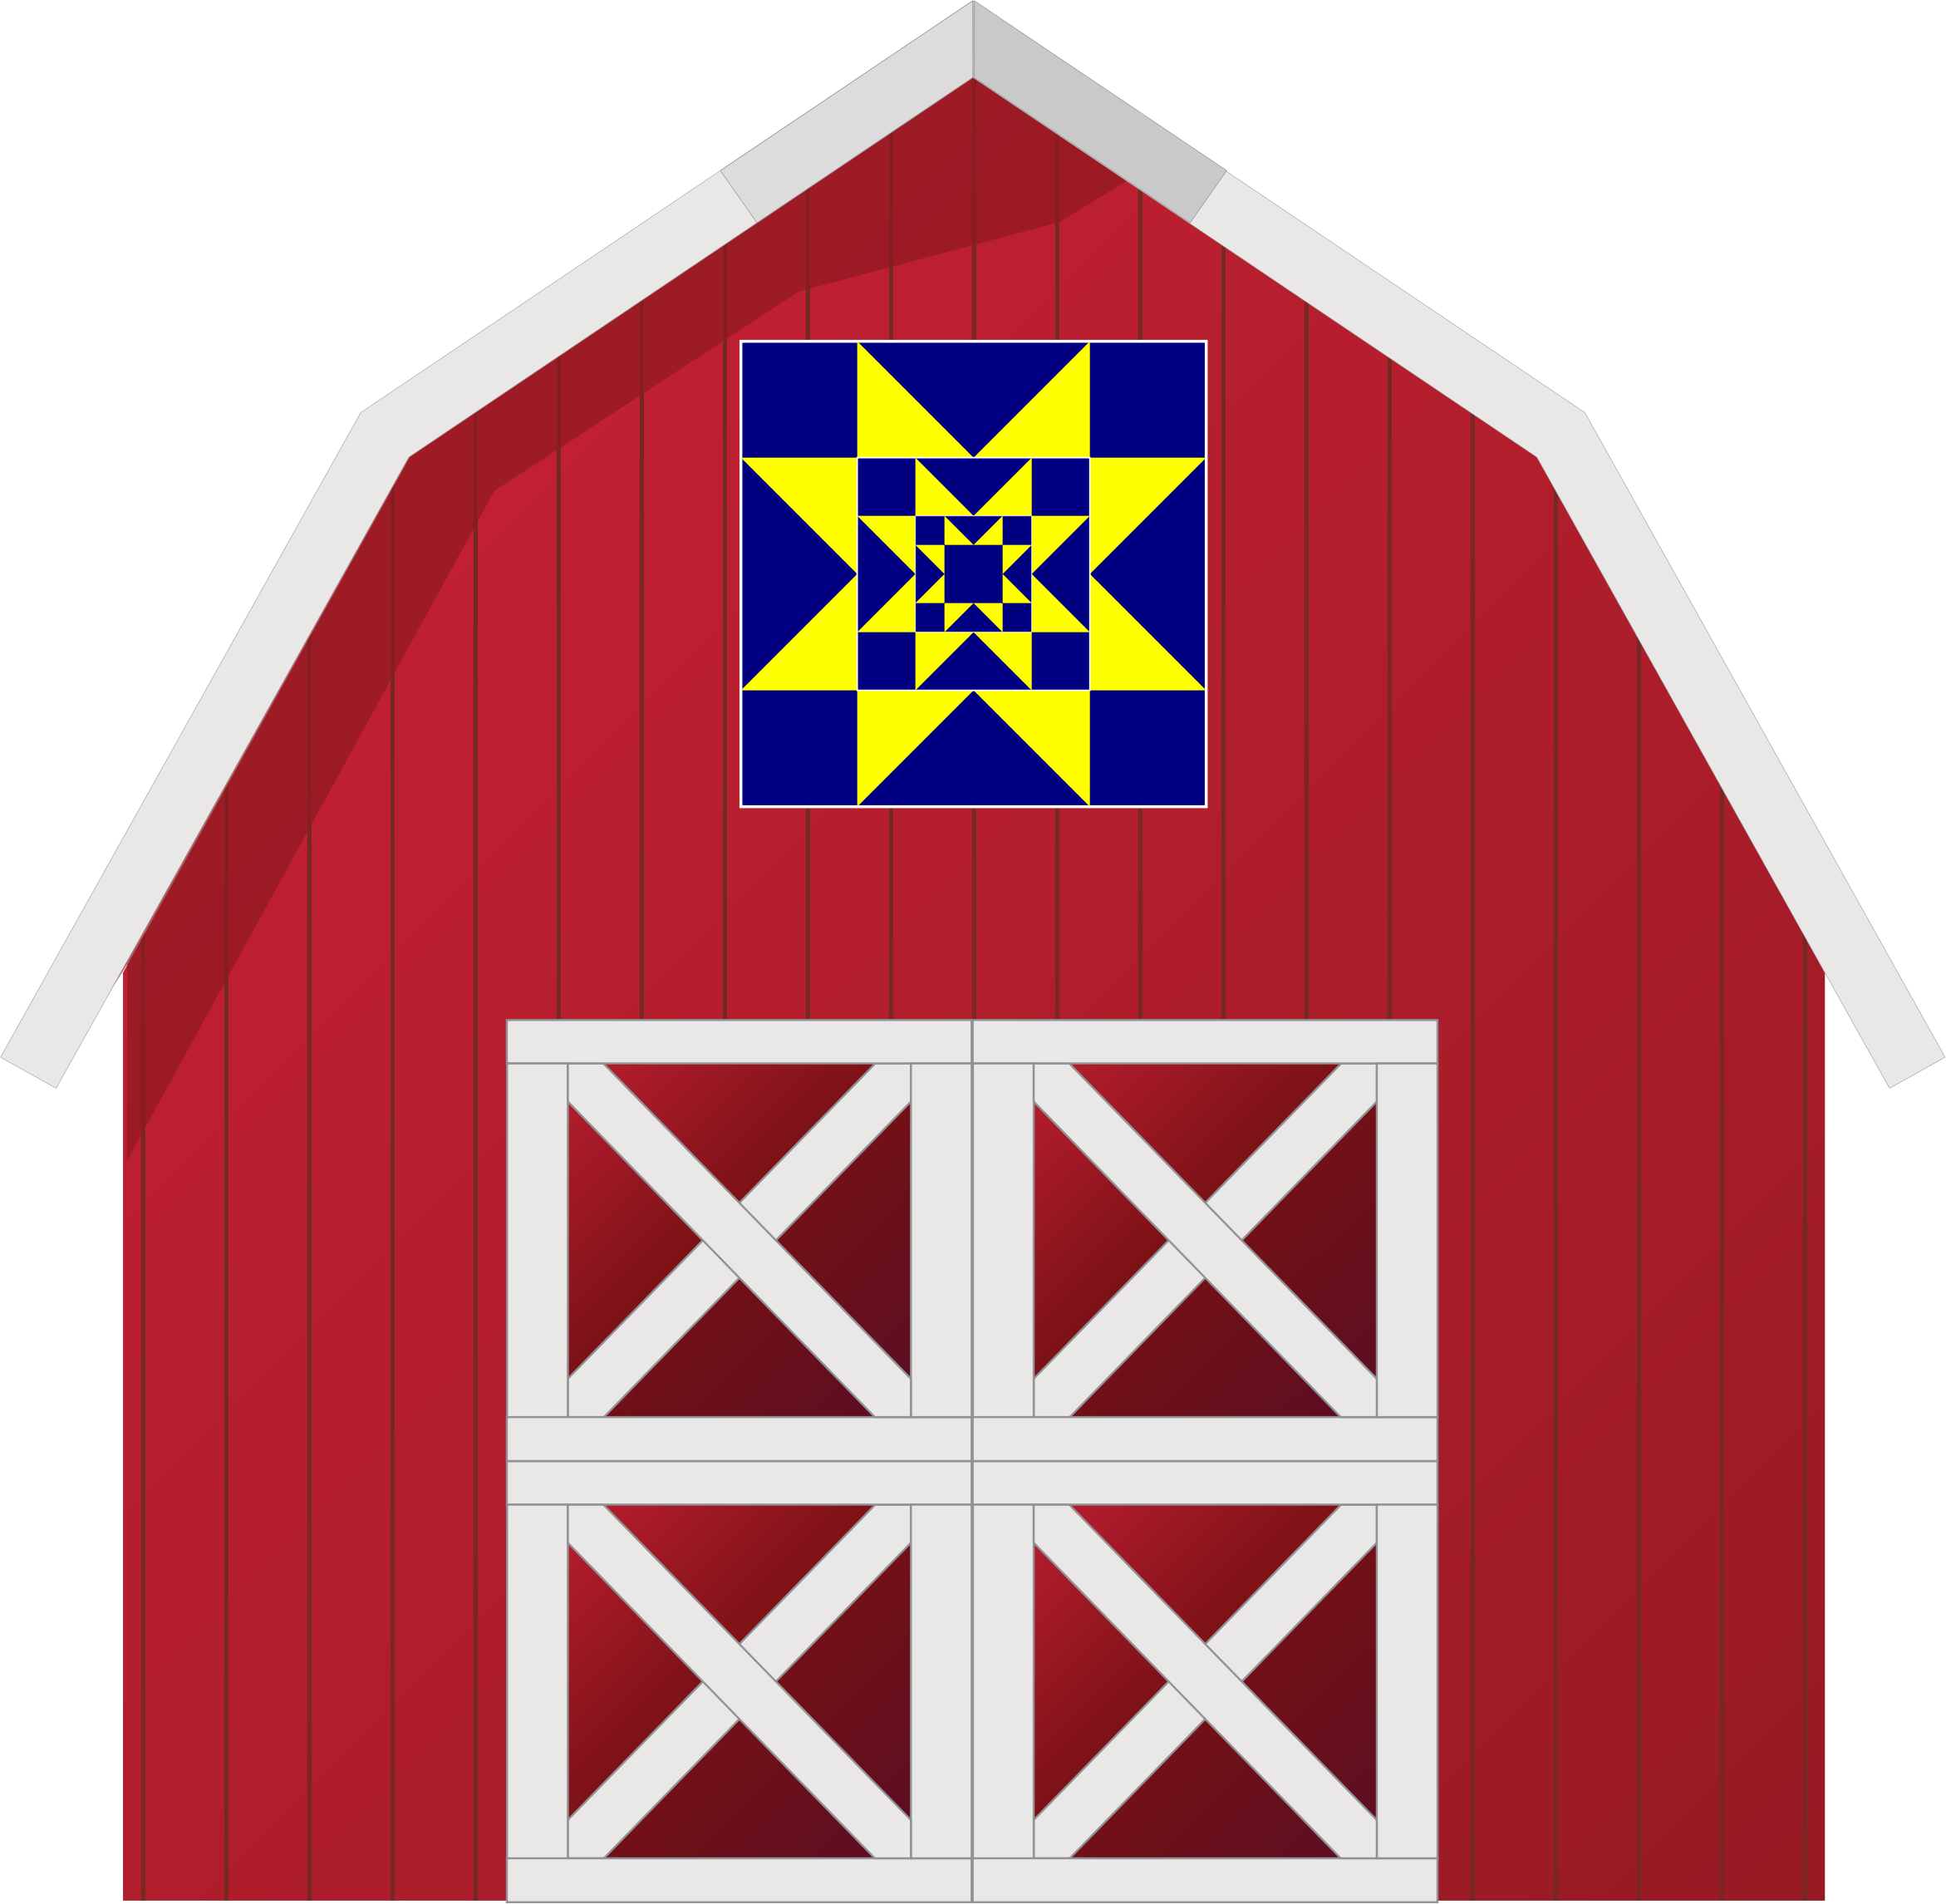 Barn Quilt 2 by JayNick